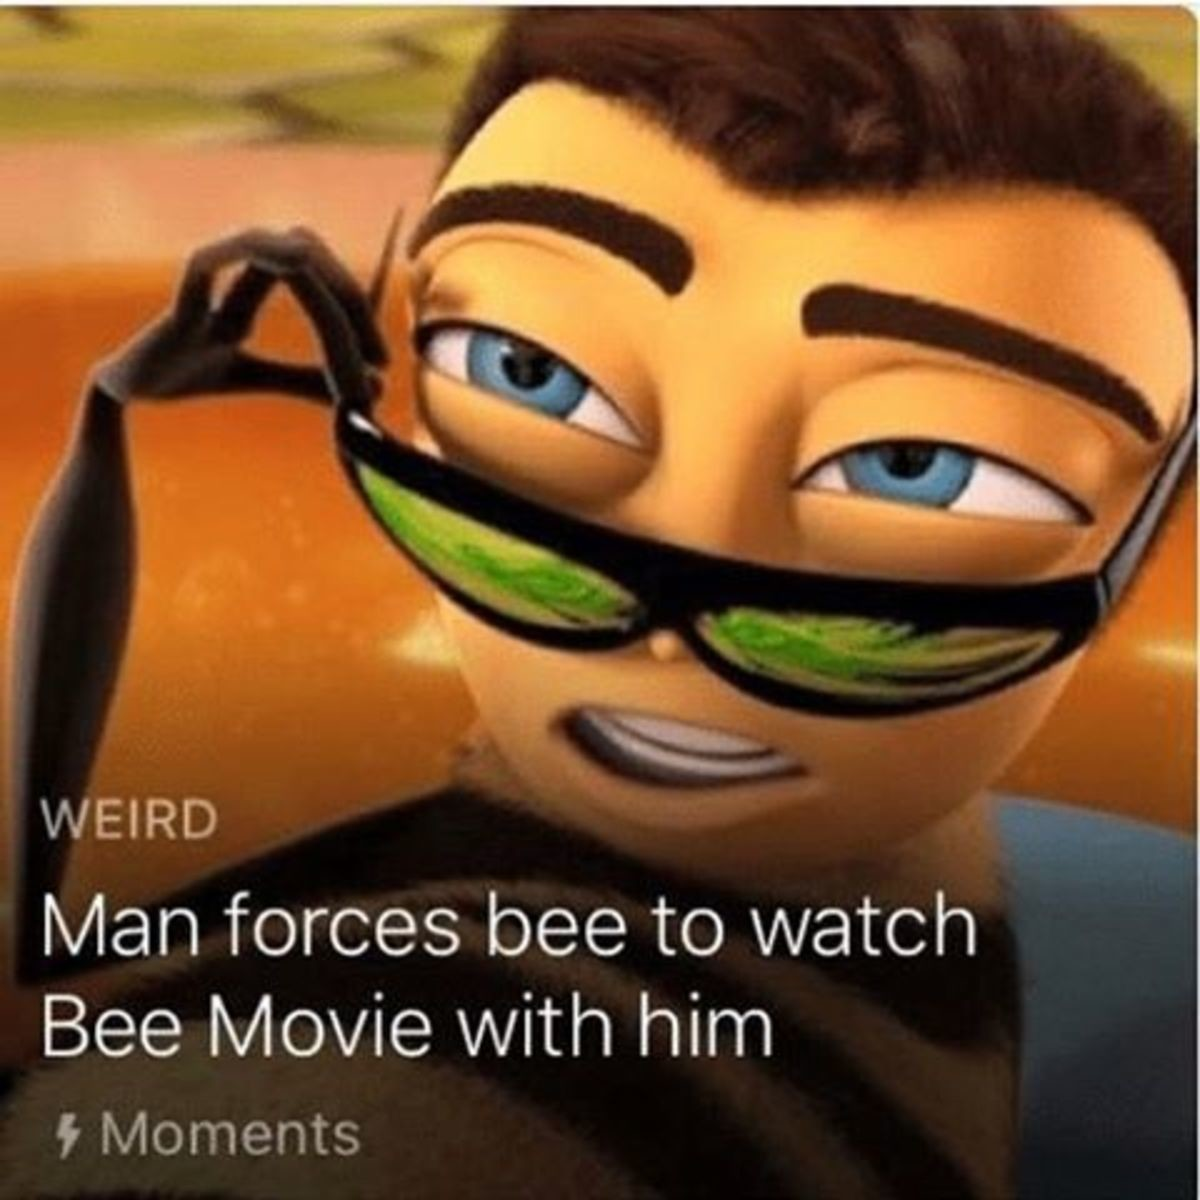 Other worldly things. . WEIRD Man forces bee to watch Bee Movie with him h,/ laments. >its real